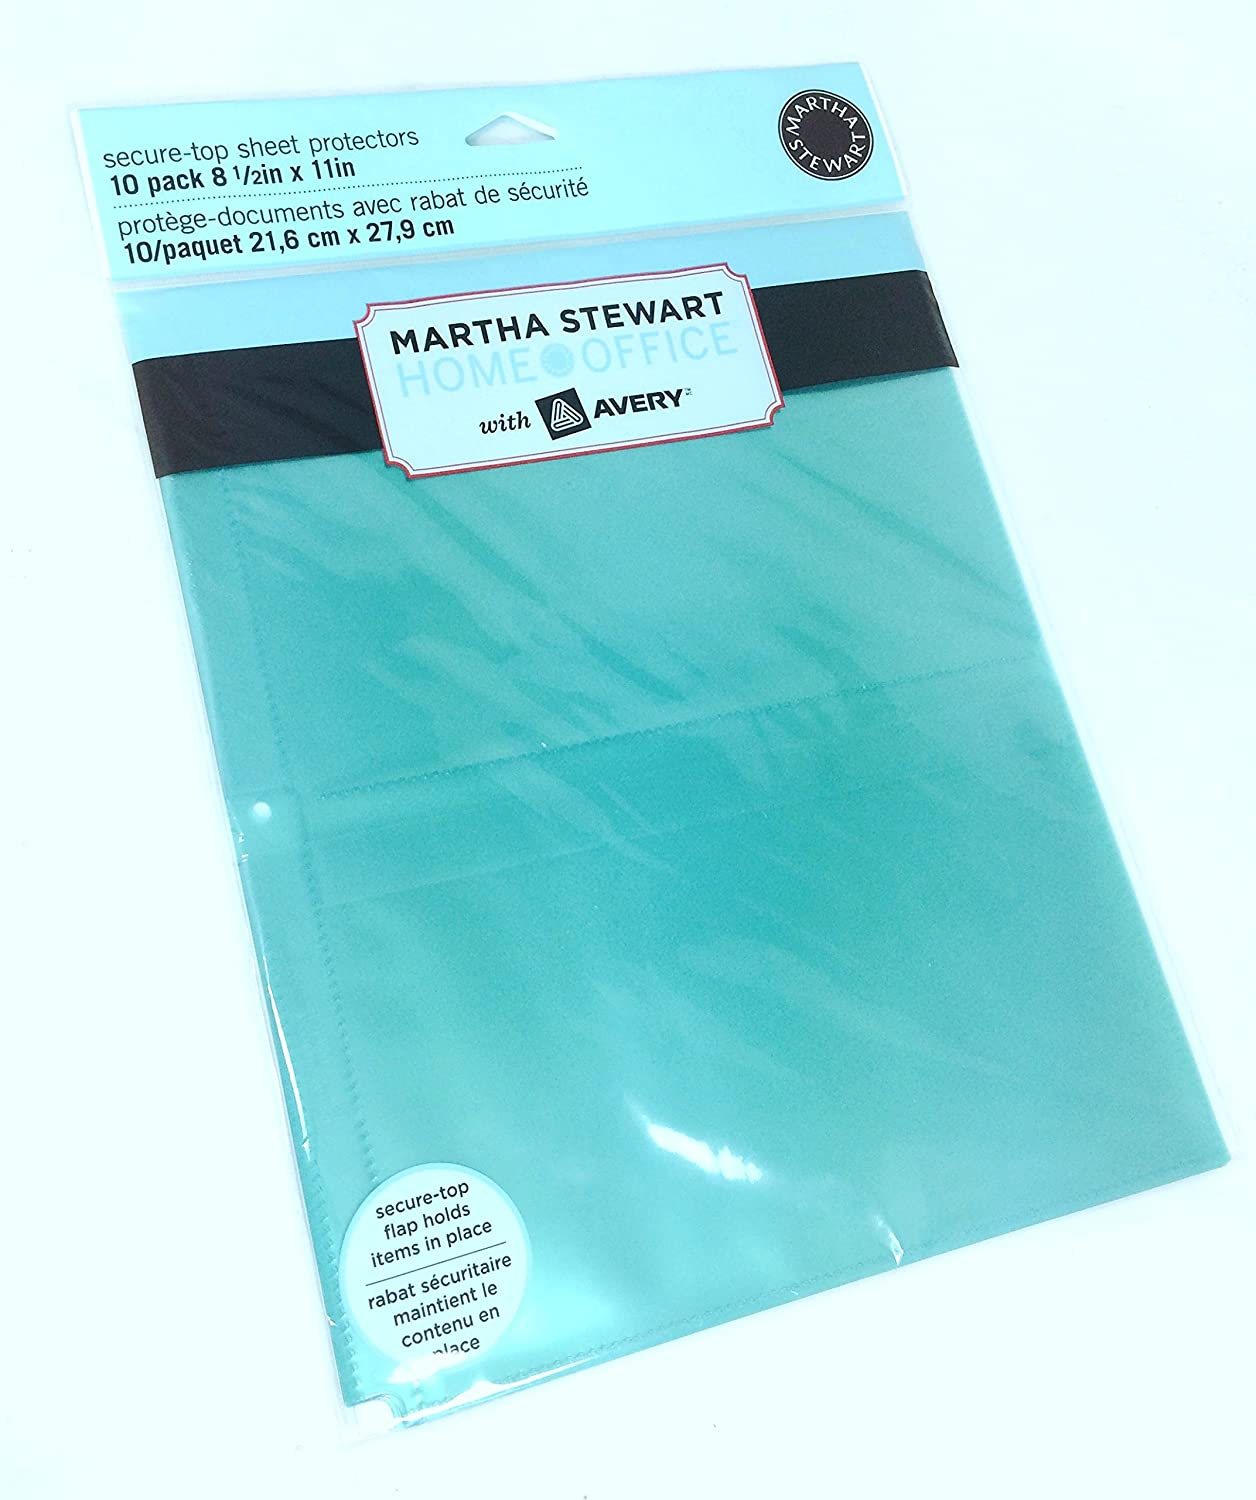 2 Pk, Martha Stewart Home Office Secure-Top Sheet Protectors